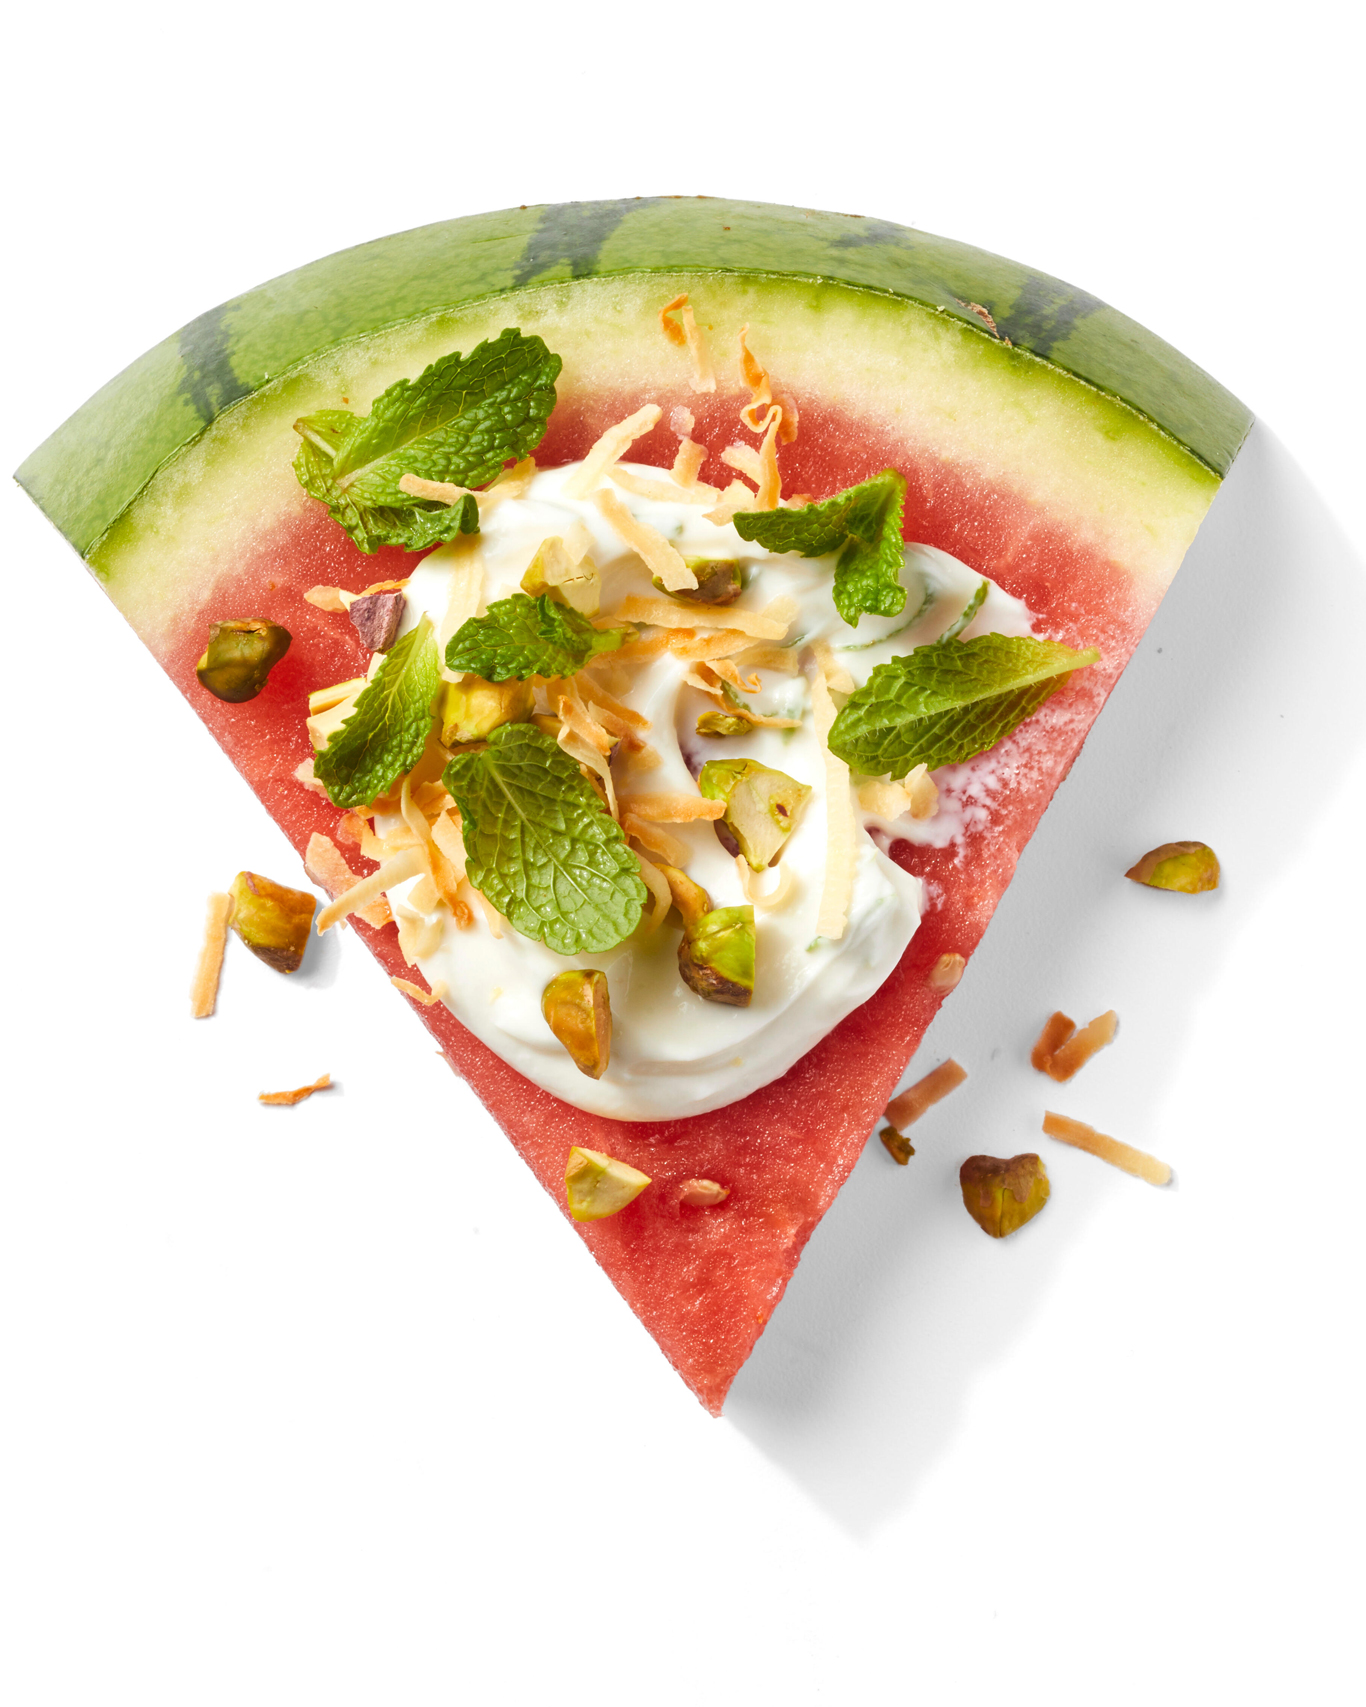 Watermelon Wedge topped with yogurt, mint, and pistachios